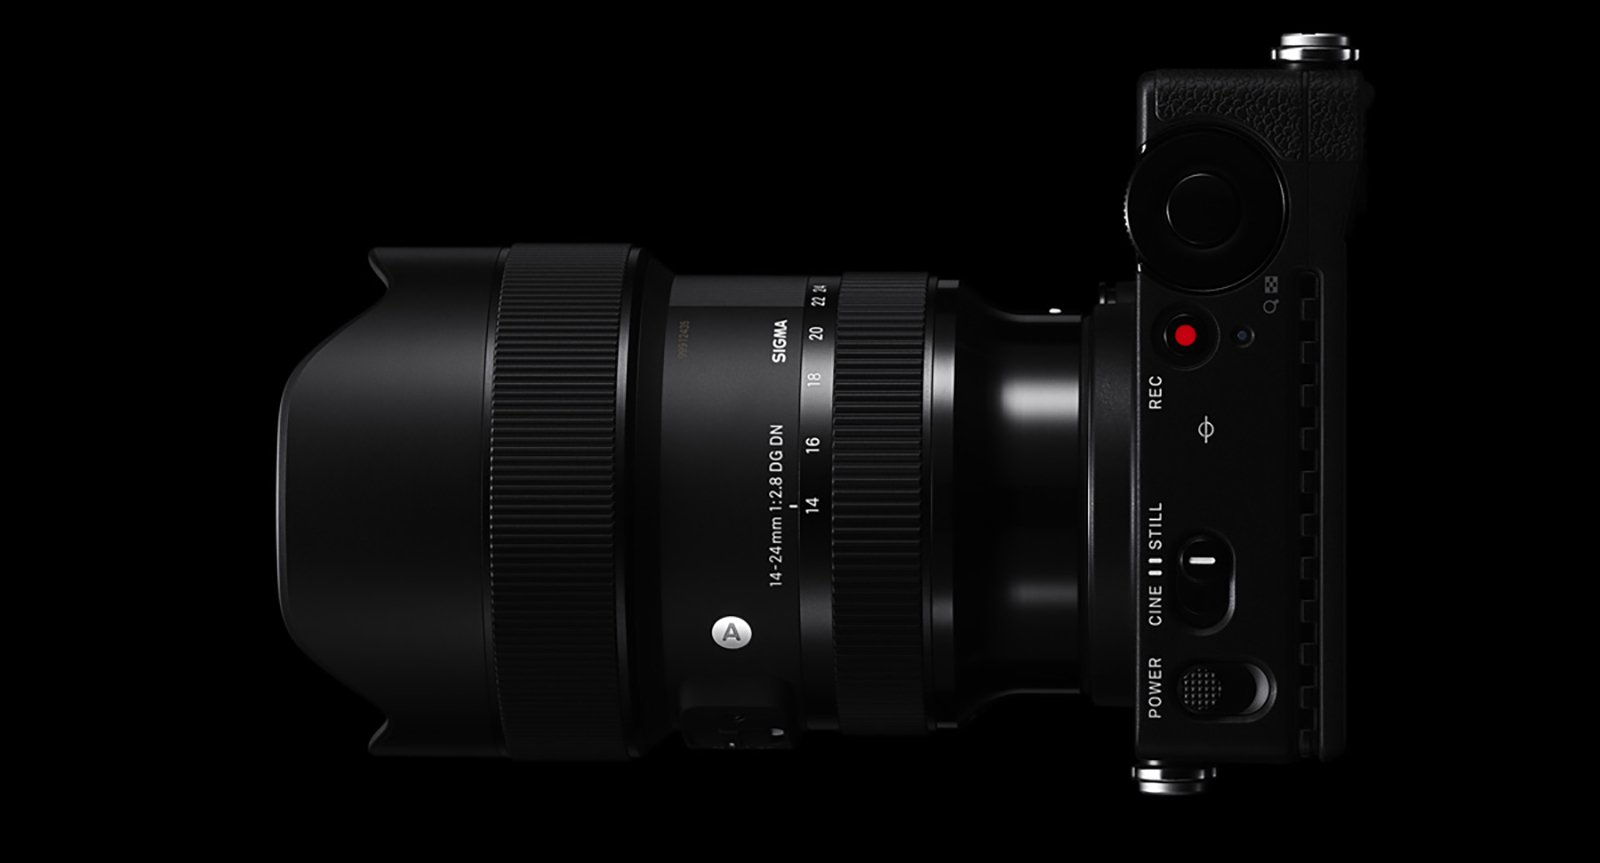 Sigma Debuts 3 Full-Frame Mirrorless Lenses, Including Their First f